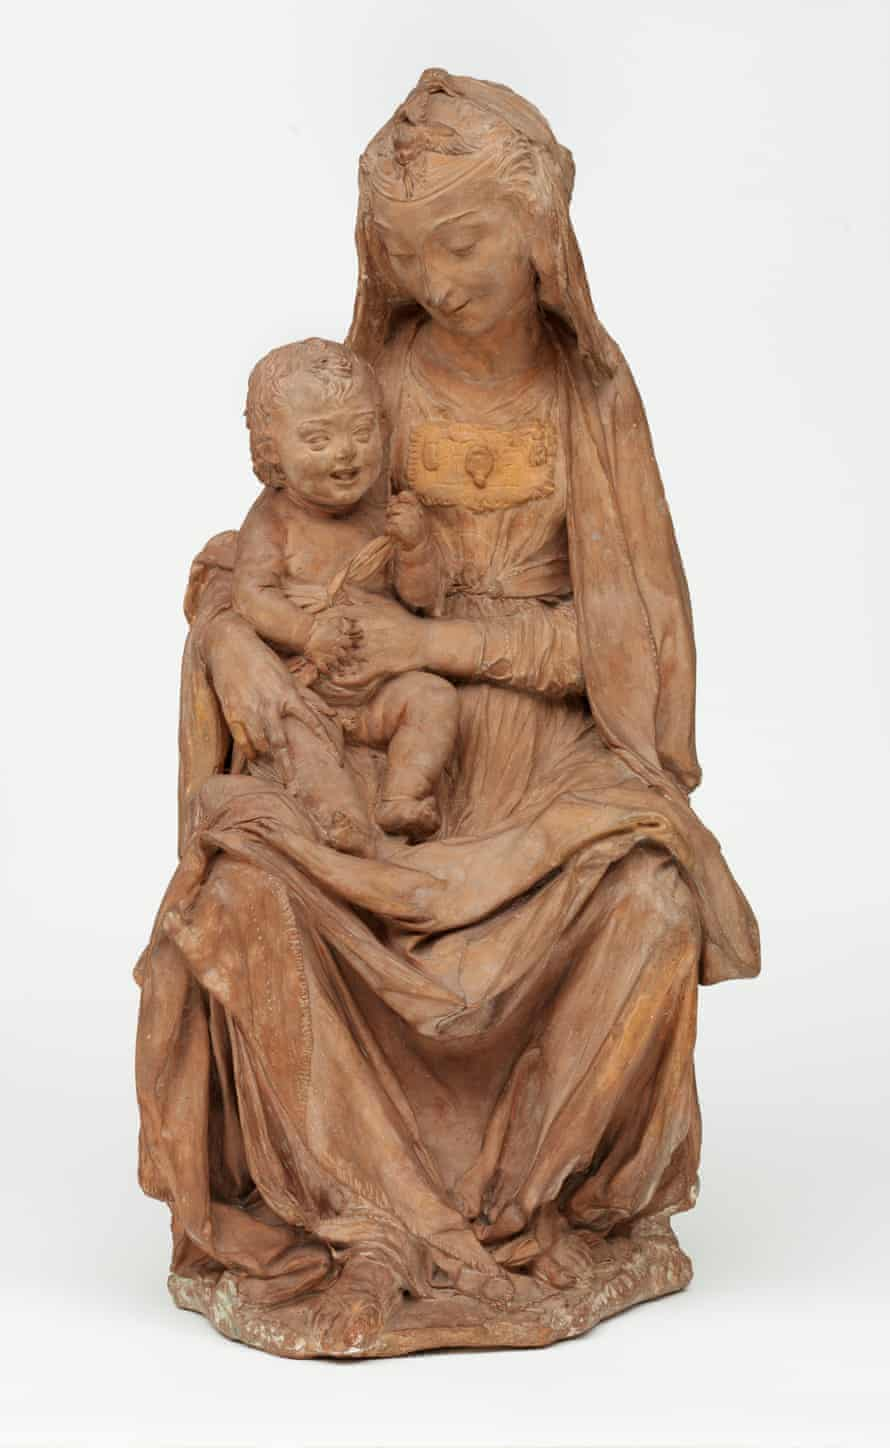 Full sculpture of The Virgin and the Laughing Child